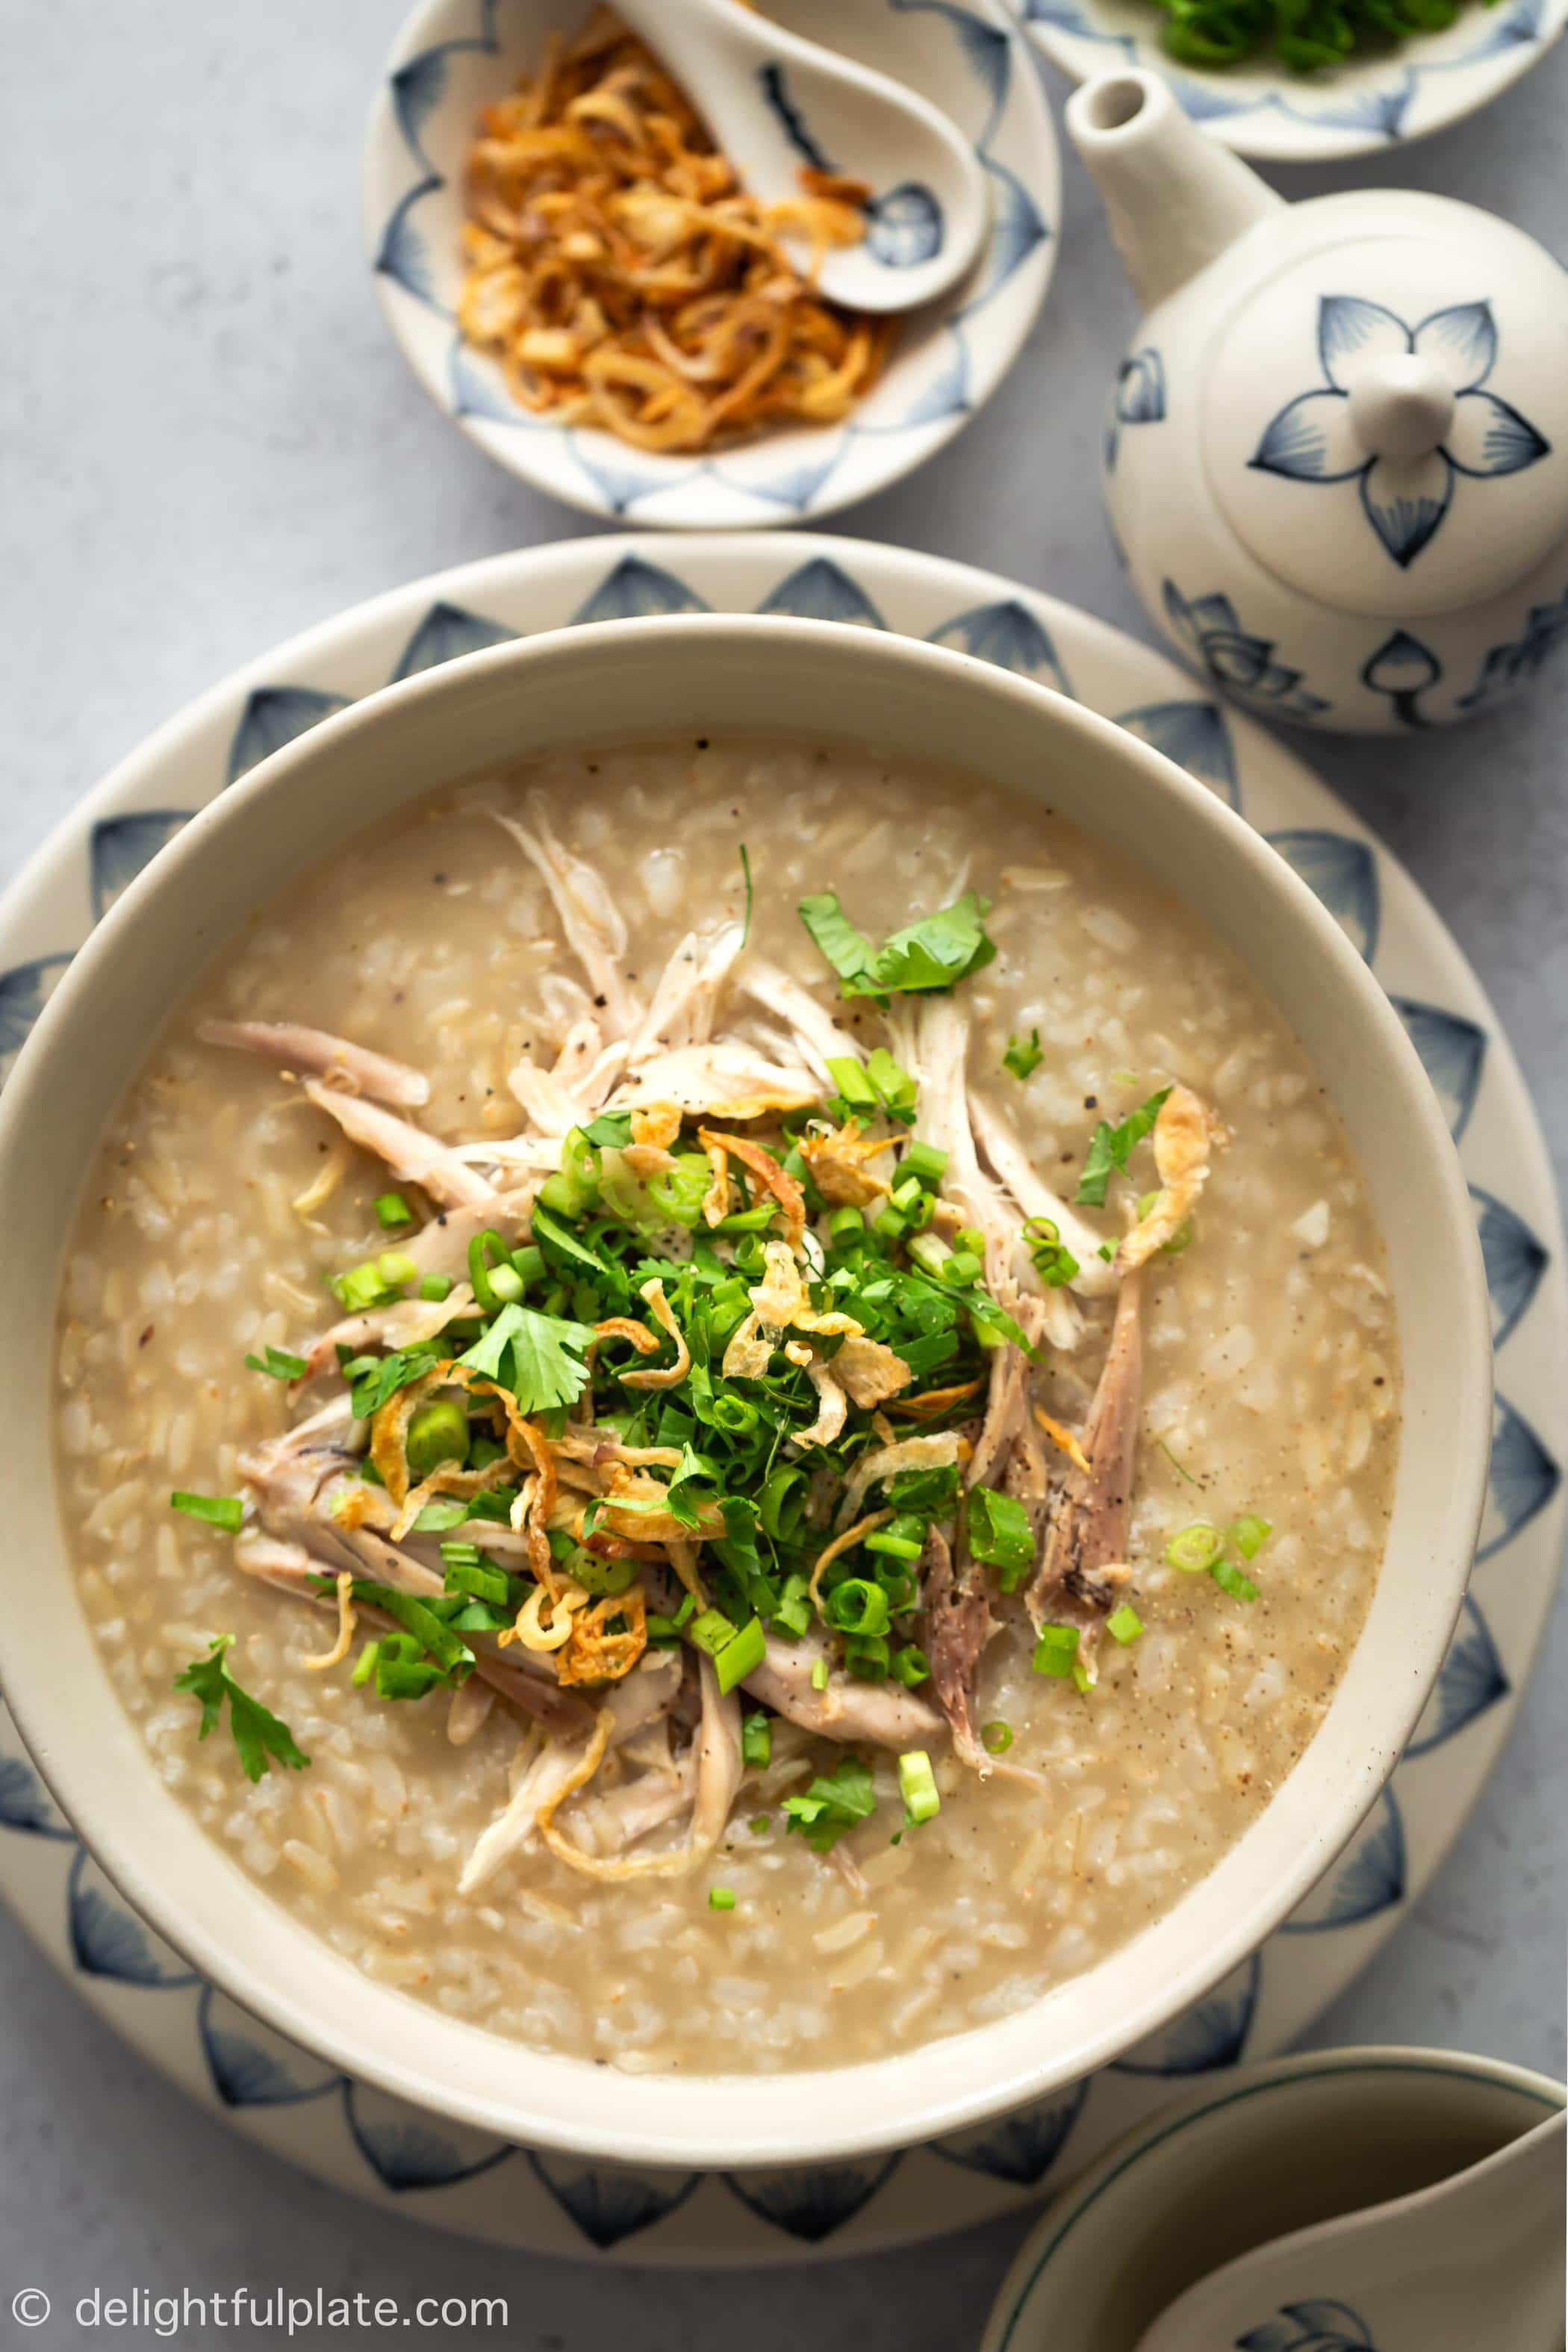 This Vietnamese Chicken Congee with Brown Rice is an easy and healthy dish to cook in your pressure cooker (such as an Instant Pot). It is Vietnamese classic comfort food.